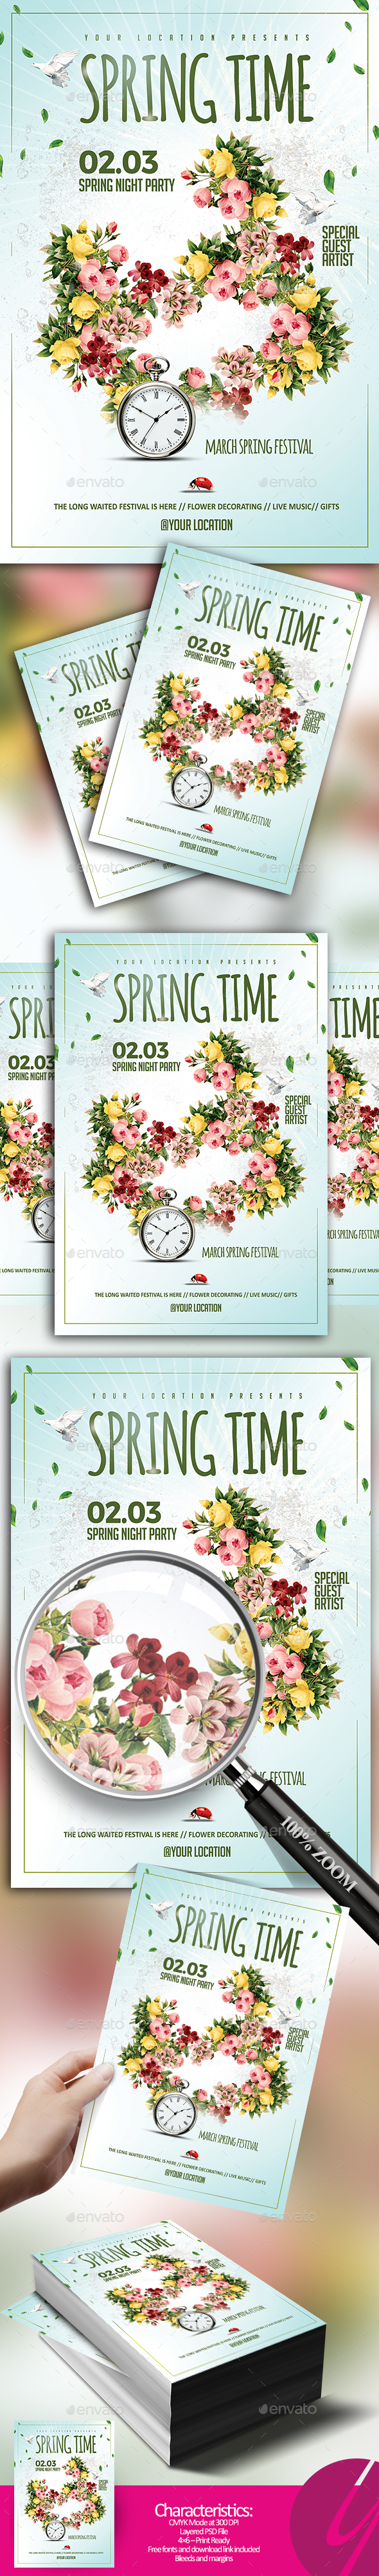 Spring Time Flyer - Holidays Events